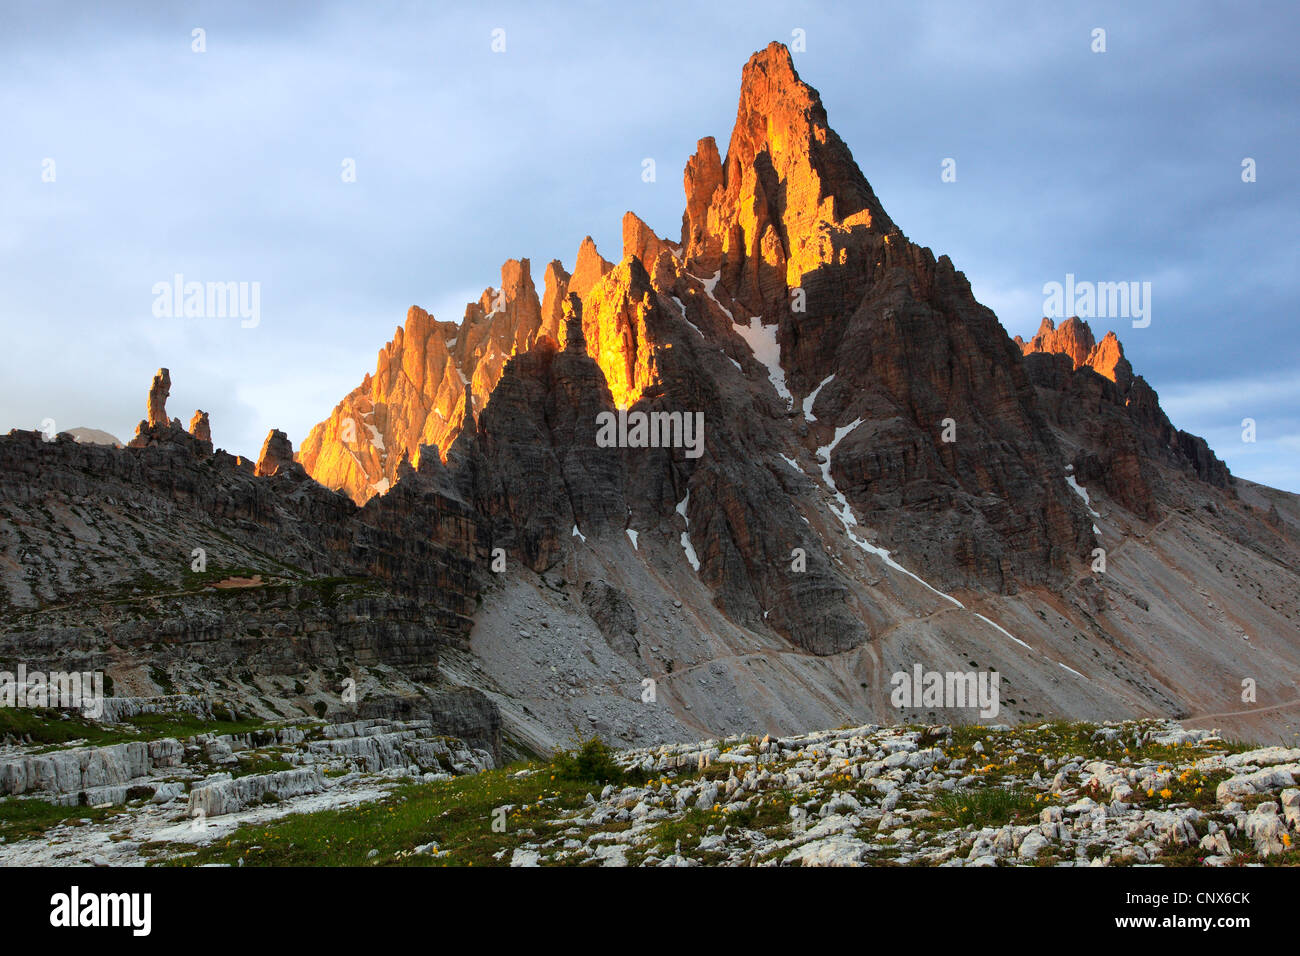 'Paternkofel' (2744 m) at the Dolomites with the top illuminated by morning light, Italy, South Tyrol, Dolomites Stock Photo